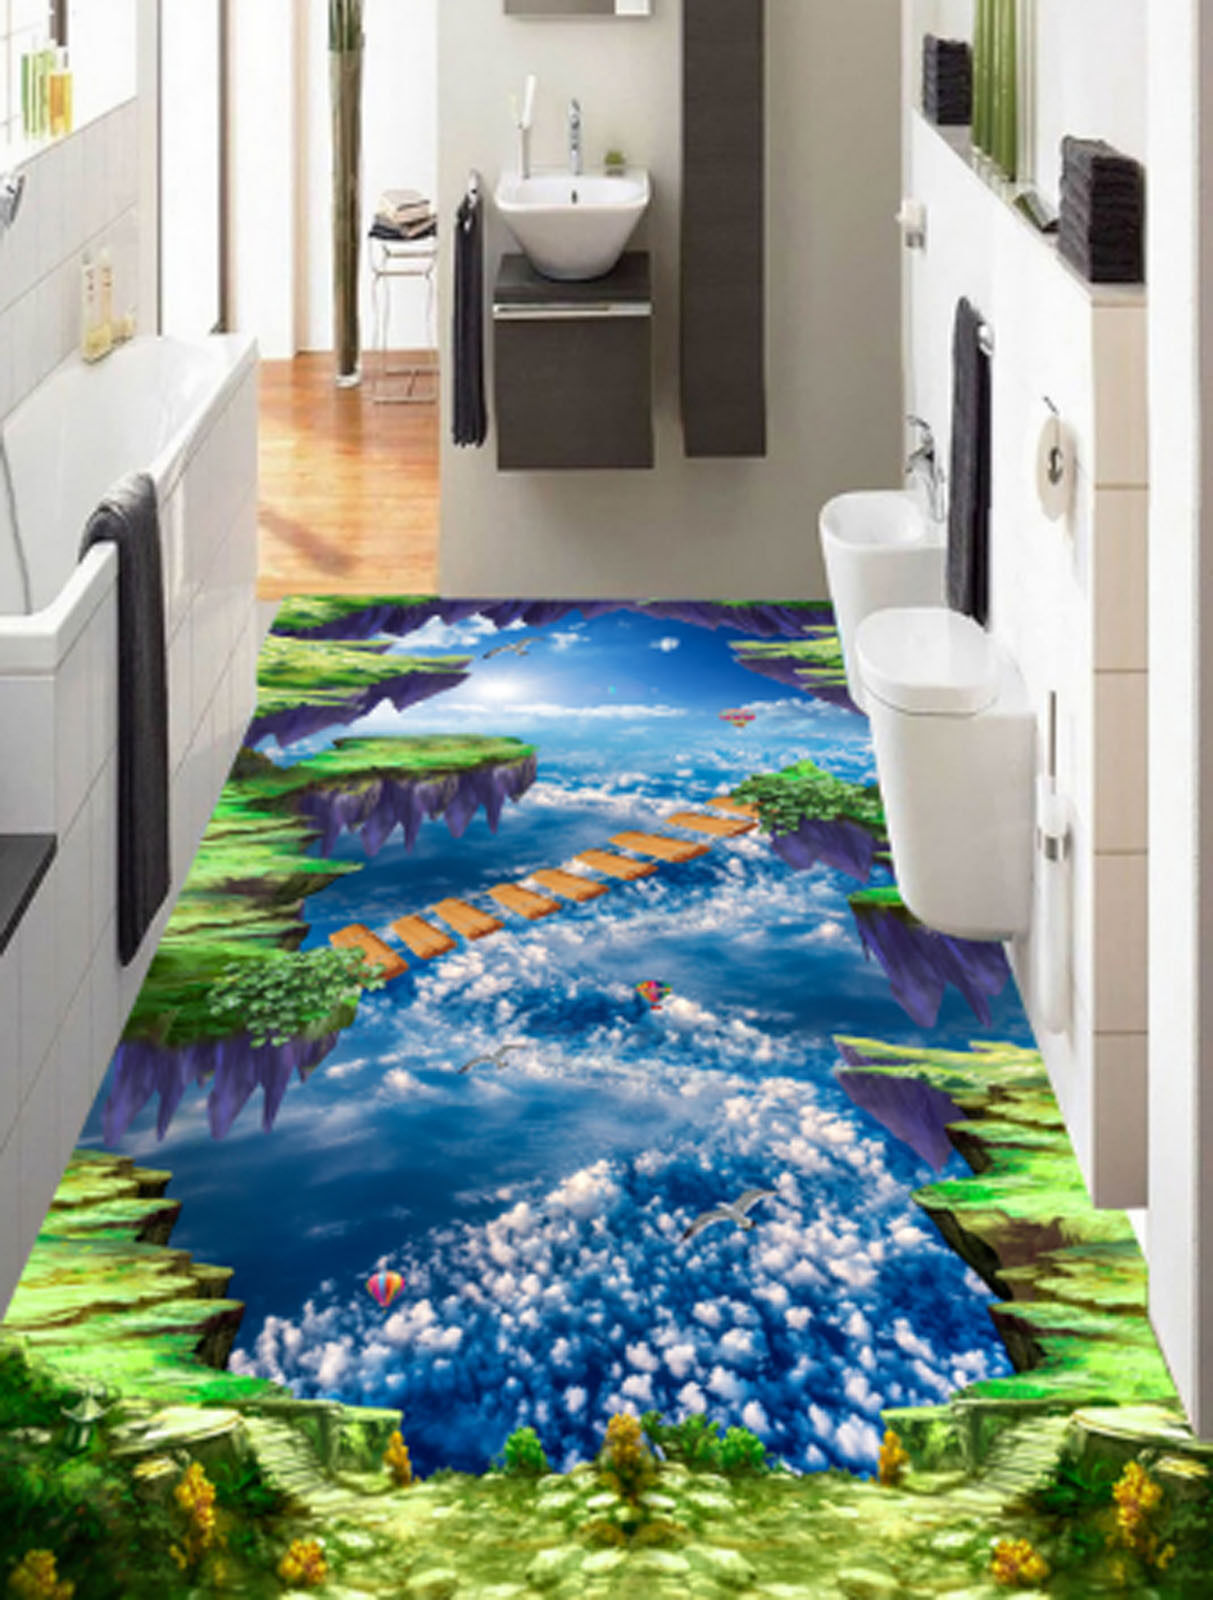 3D Blau Sky Bridge 4075 Floor WallPaper Murals Wallpaper Mural Print AJ AU Lemon